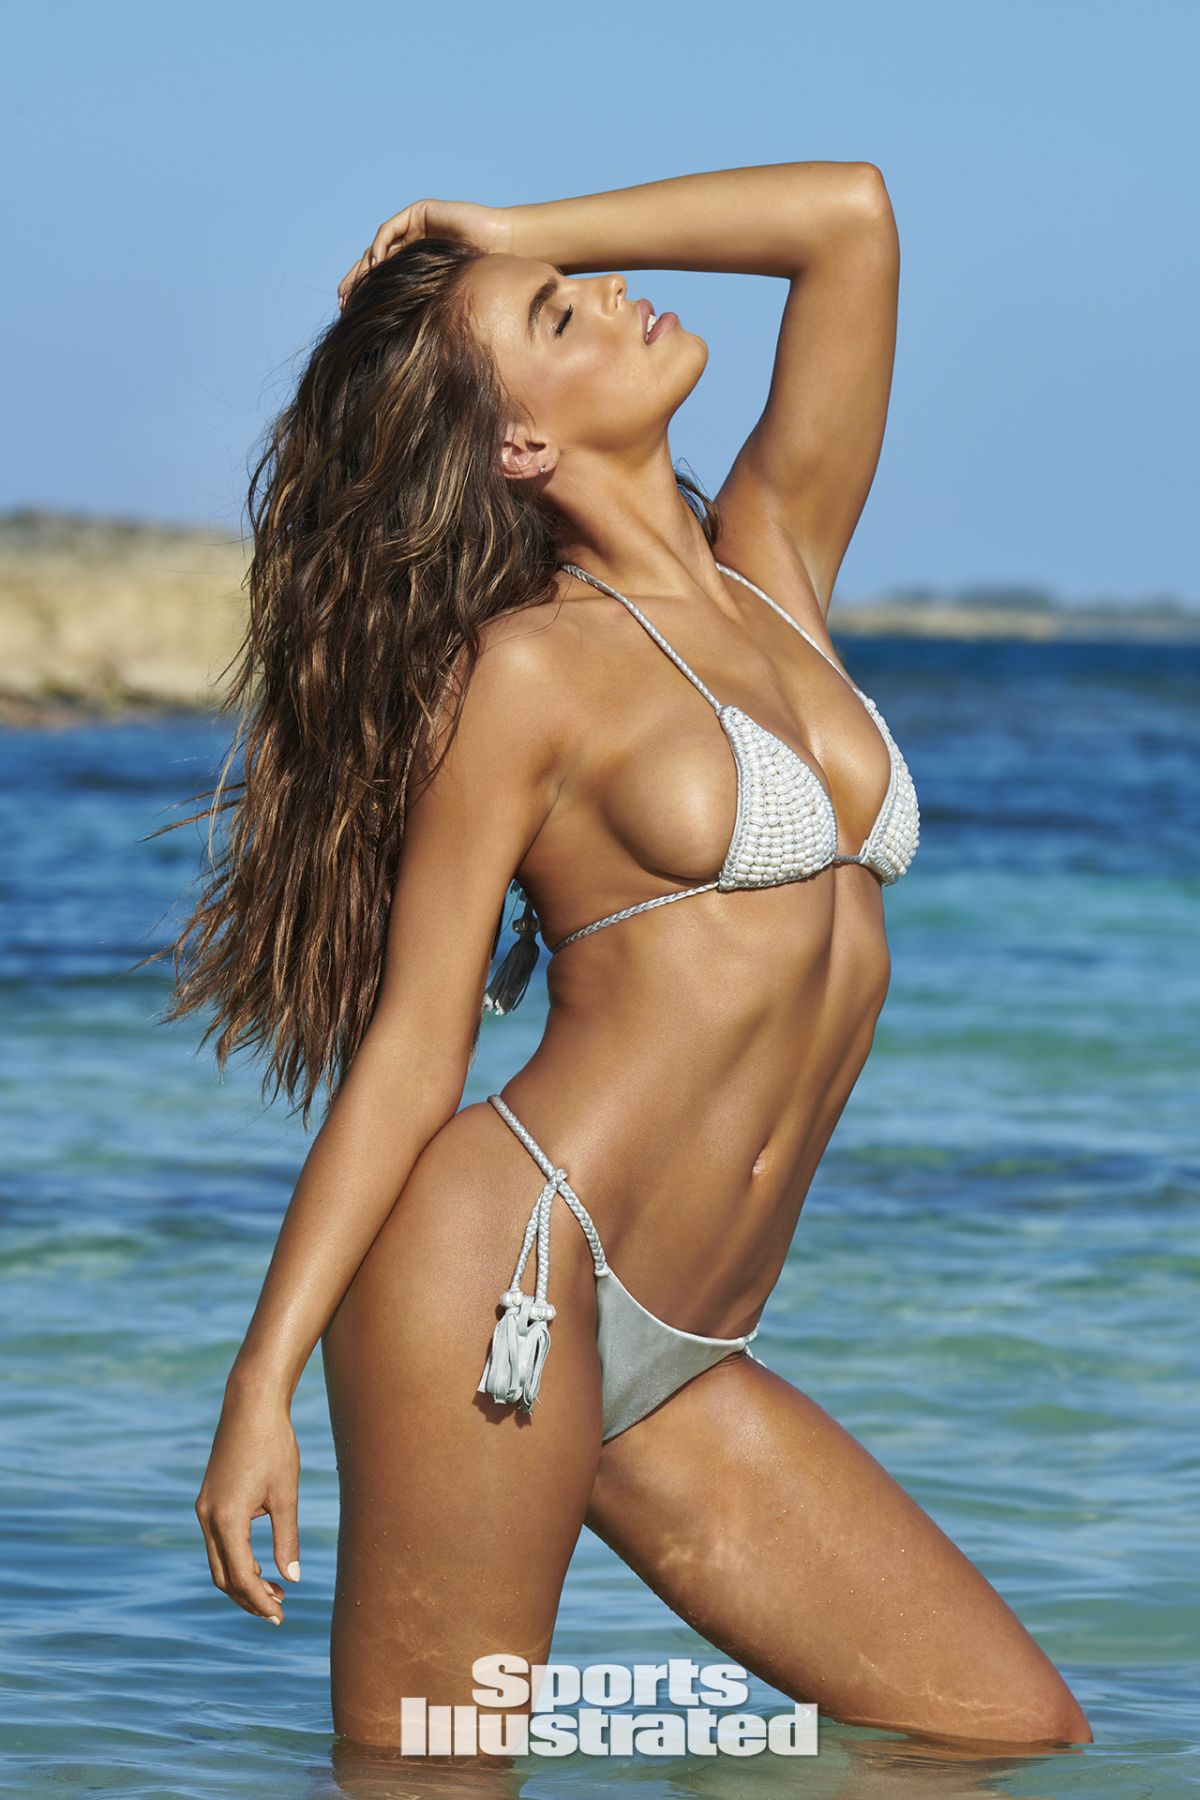 illustrated swimsuit sports nader brooks issue topless si hawtcelebs beach leaked imperiodefamosas instagram gotceleb